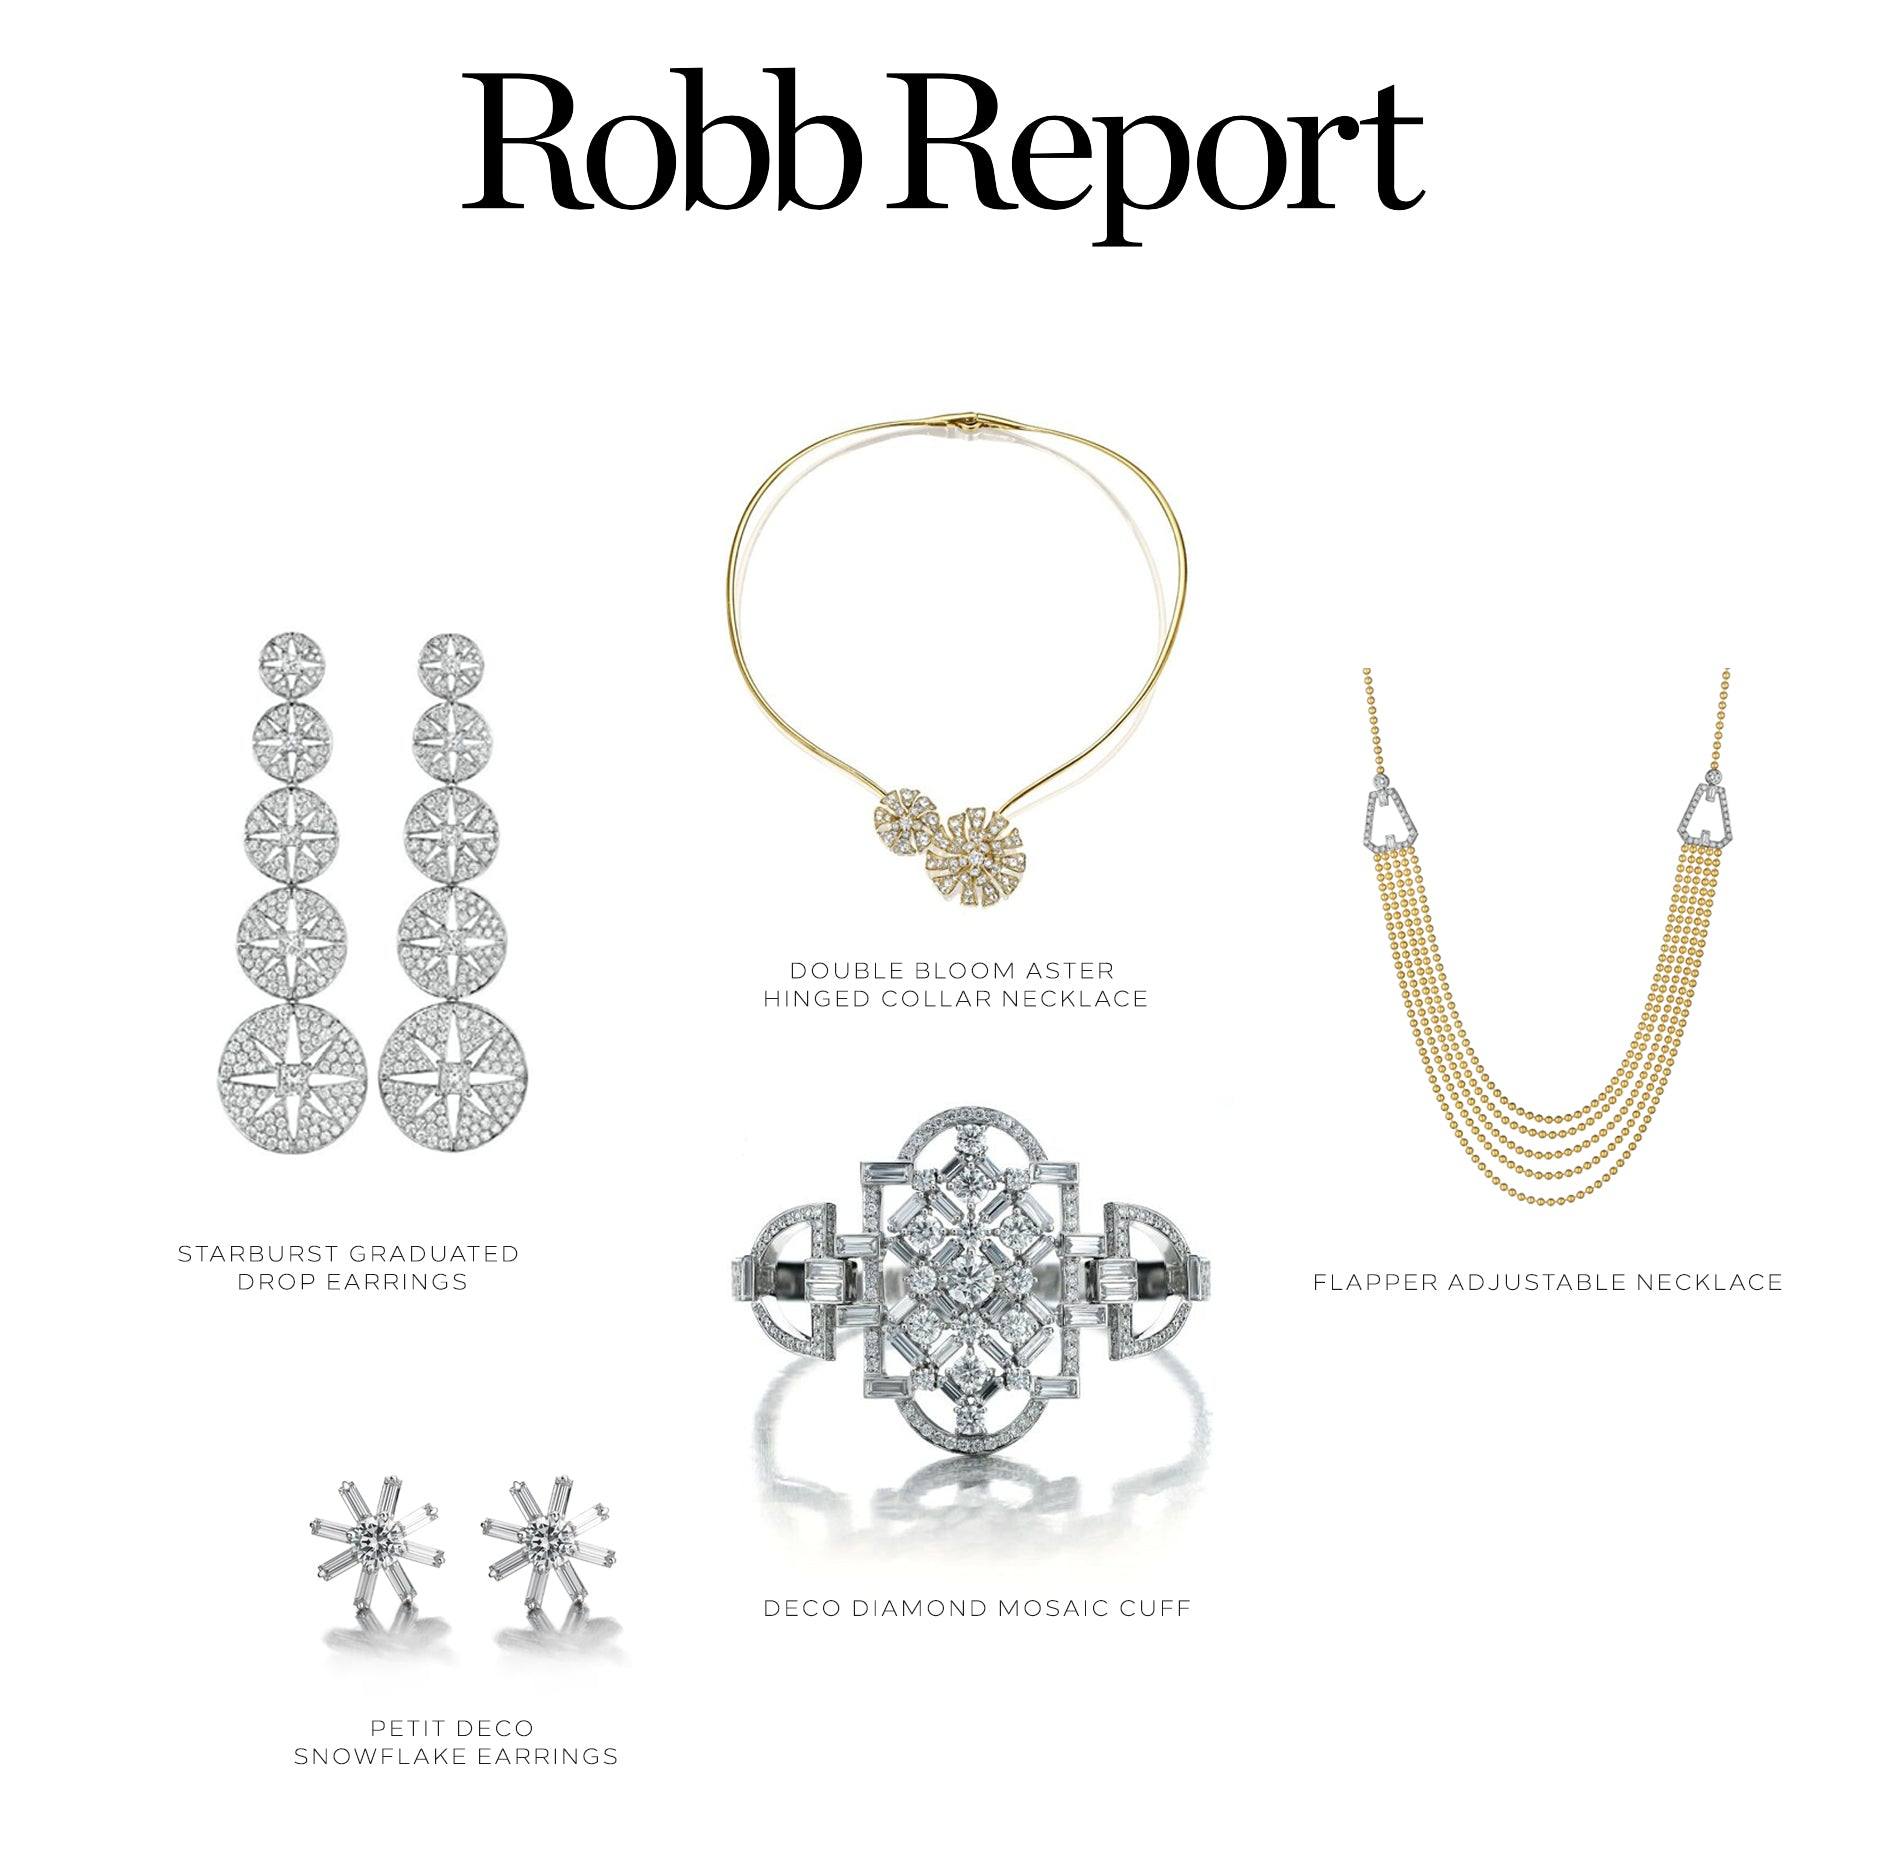 a85dbbd3f Former Tiffany & Co. Designer Offers Tips for Building a Contemporary  Jewelry Wardrobe